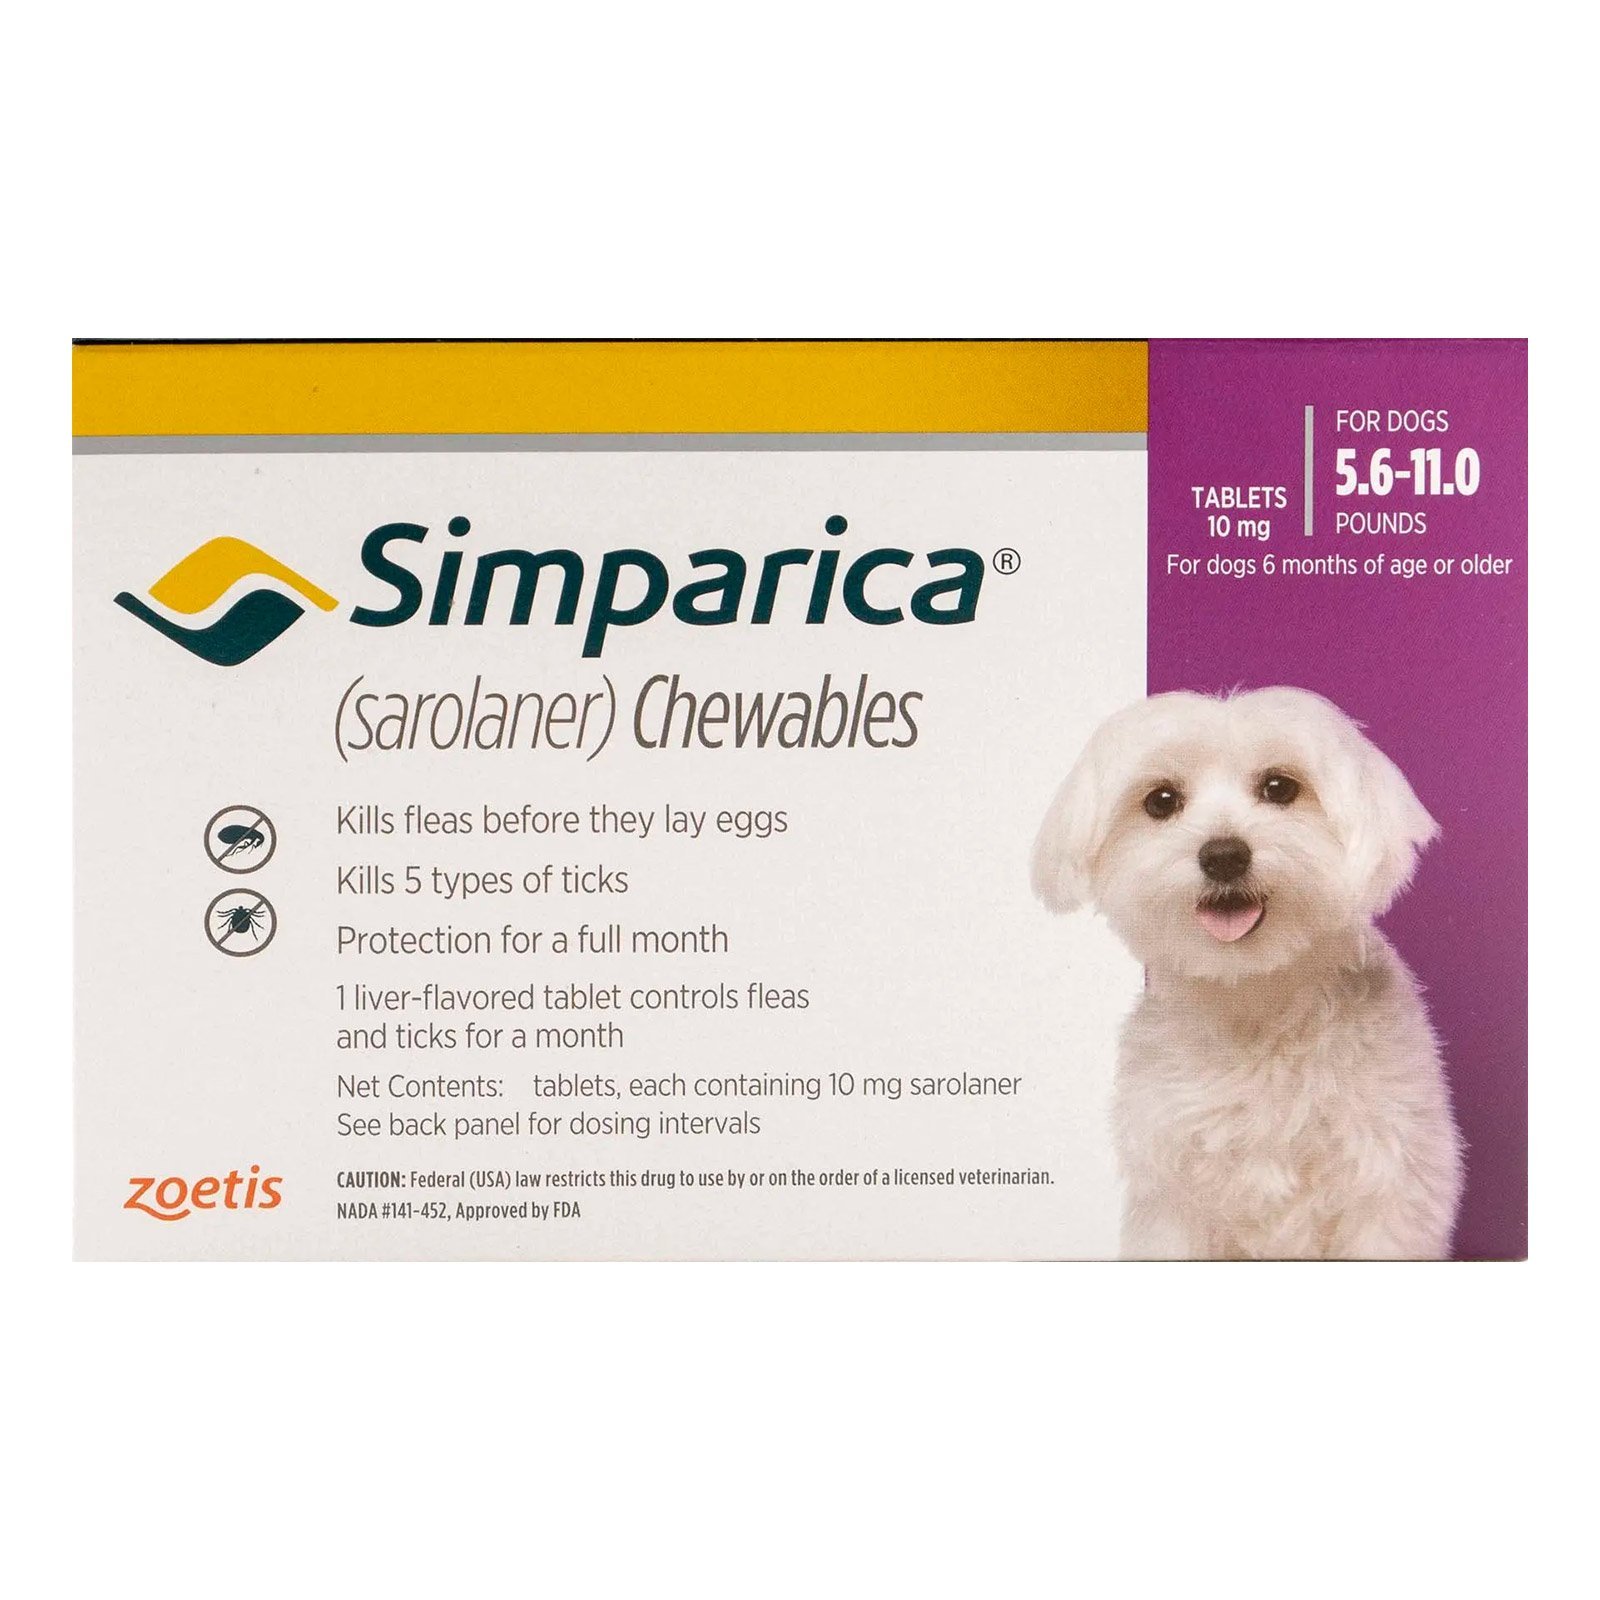 Simparica Chewables for Dogs 5.6-11 lbs (Purple)